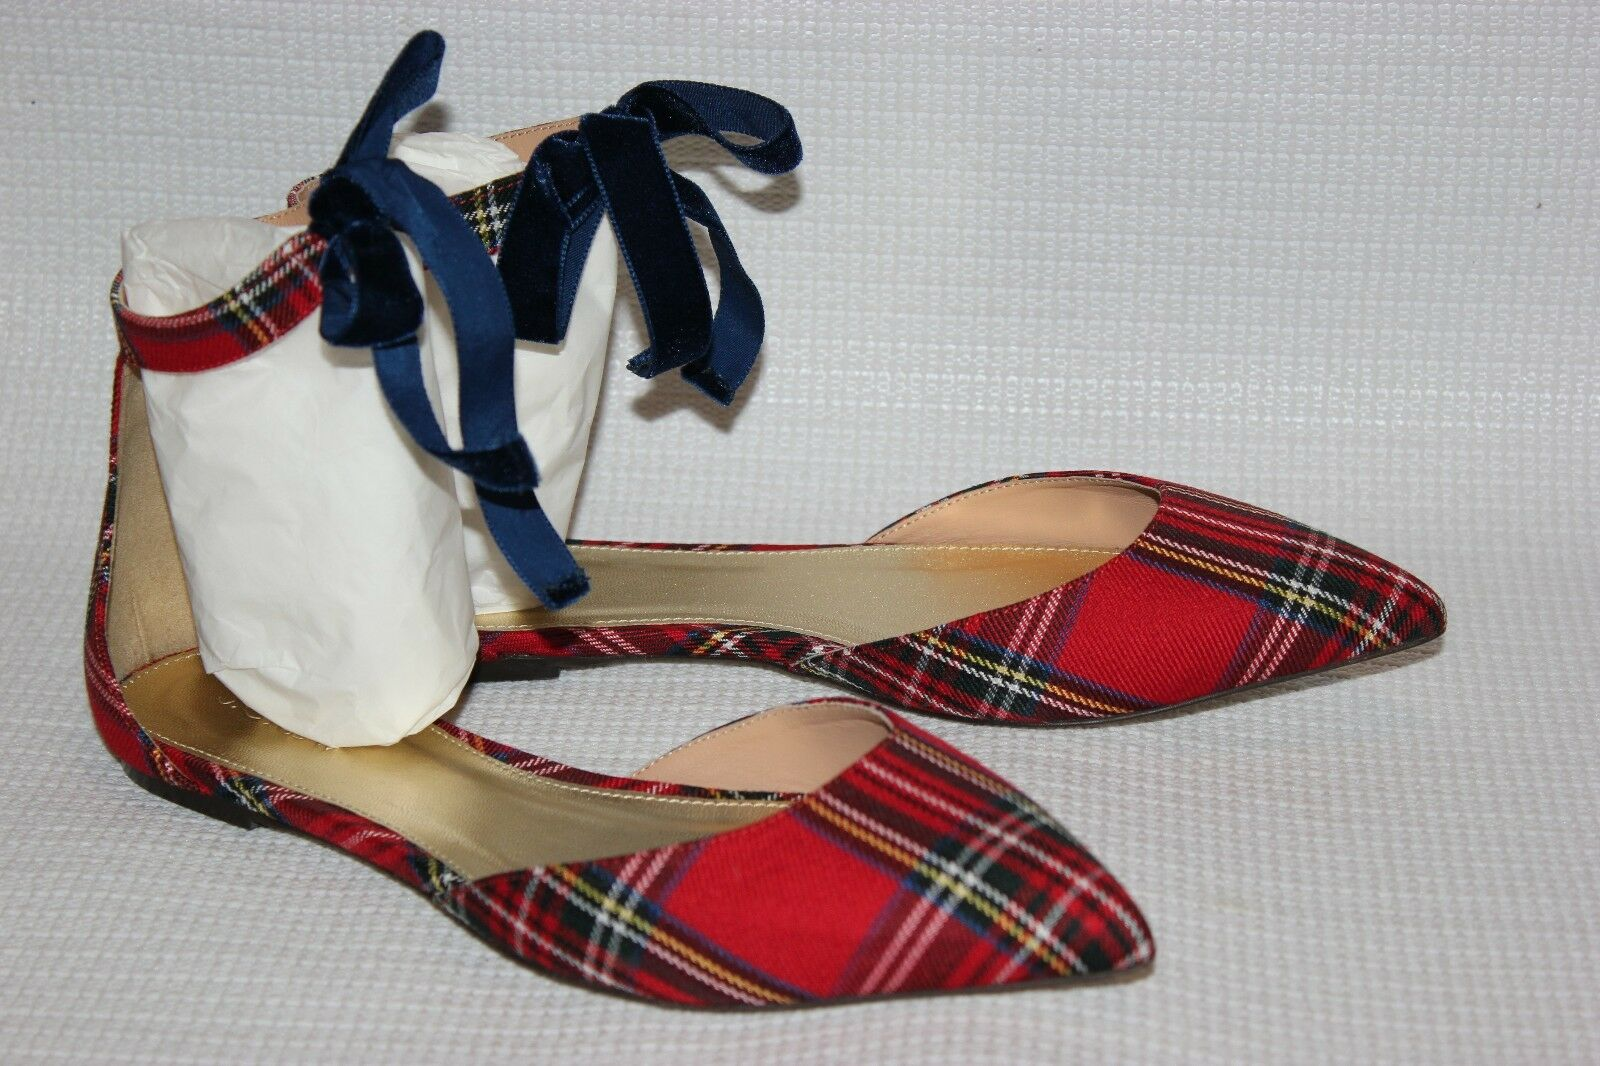 J.CREW PLAID ANKLE STRAP D'ORDAY FLAT SIZE 7.5 RED BLACK H1841